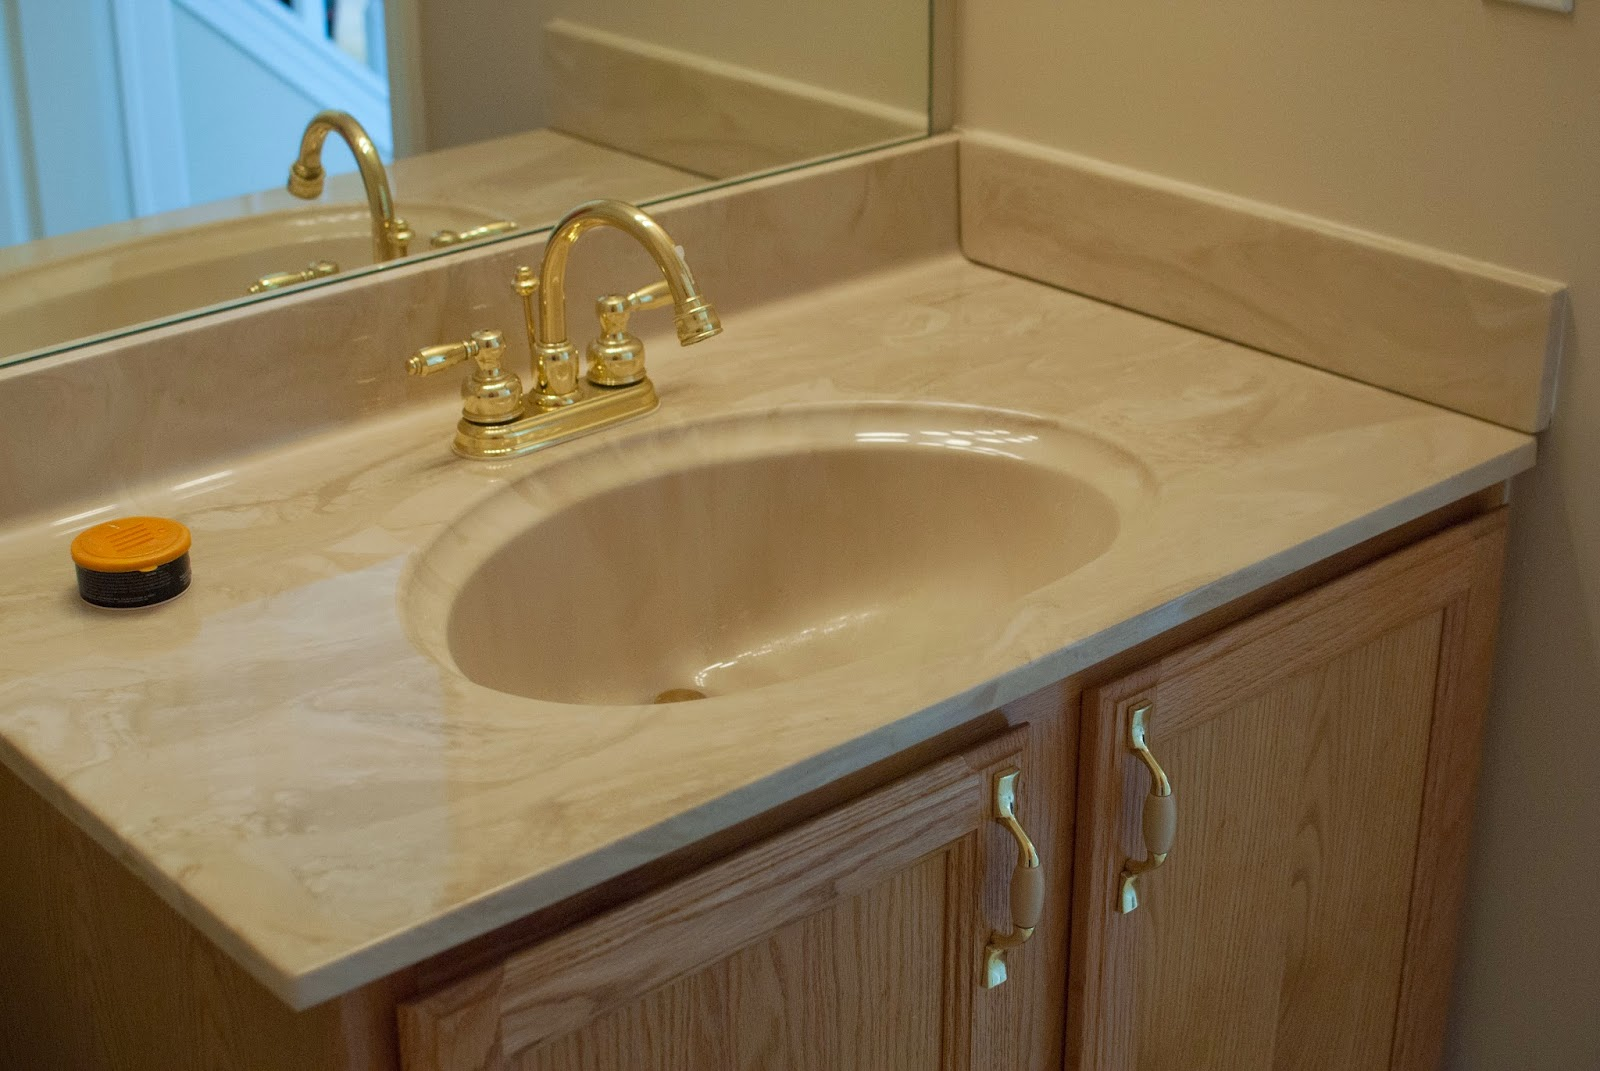 Vanity Sink And Countertop Before I 39 M Flying South Featured On